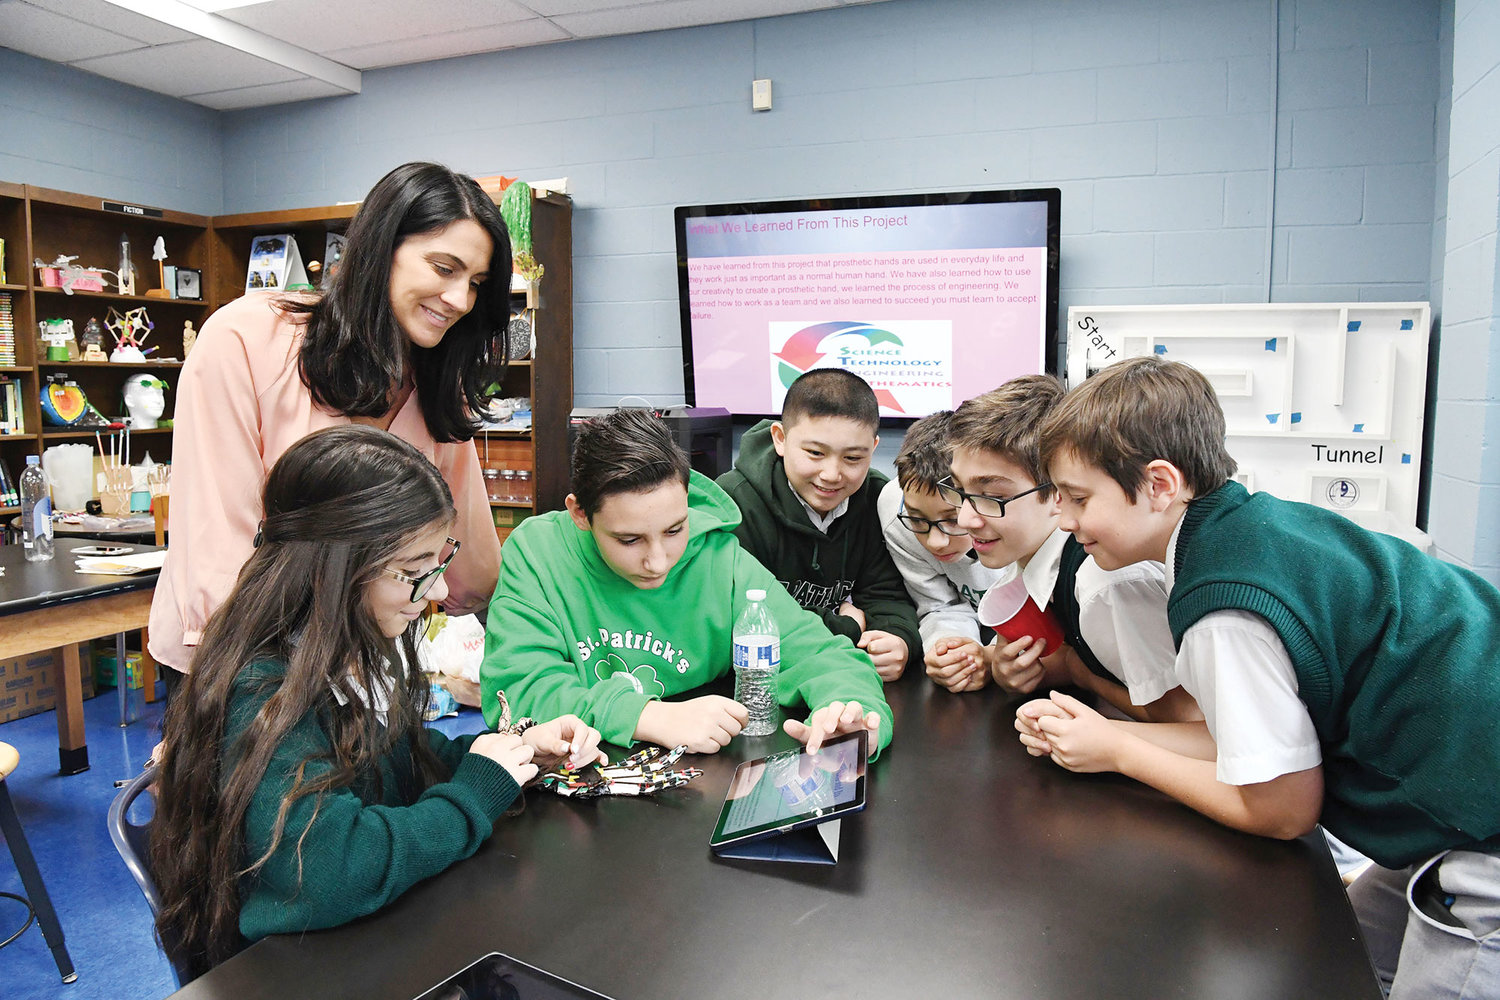 STEM Lab teacher Danielle Tornabene looks on as seventh-graders observe a prosthetic hand created by three of the students. At the table are, from left, Giuliana Westgate, Philip Raneri, Keoni Jensen, Nicholas Borruso, Joseph Lattaruli and Gabriel Walon.